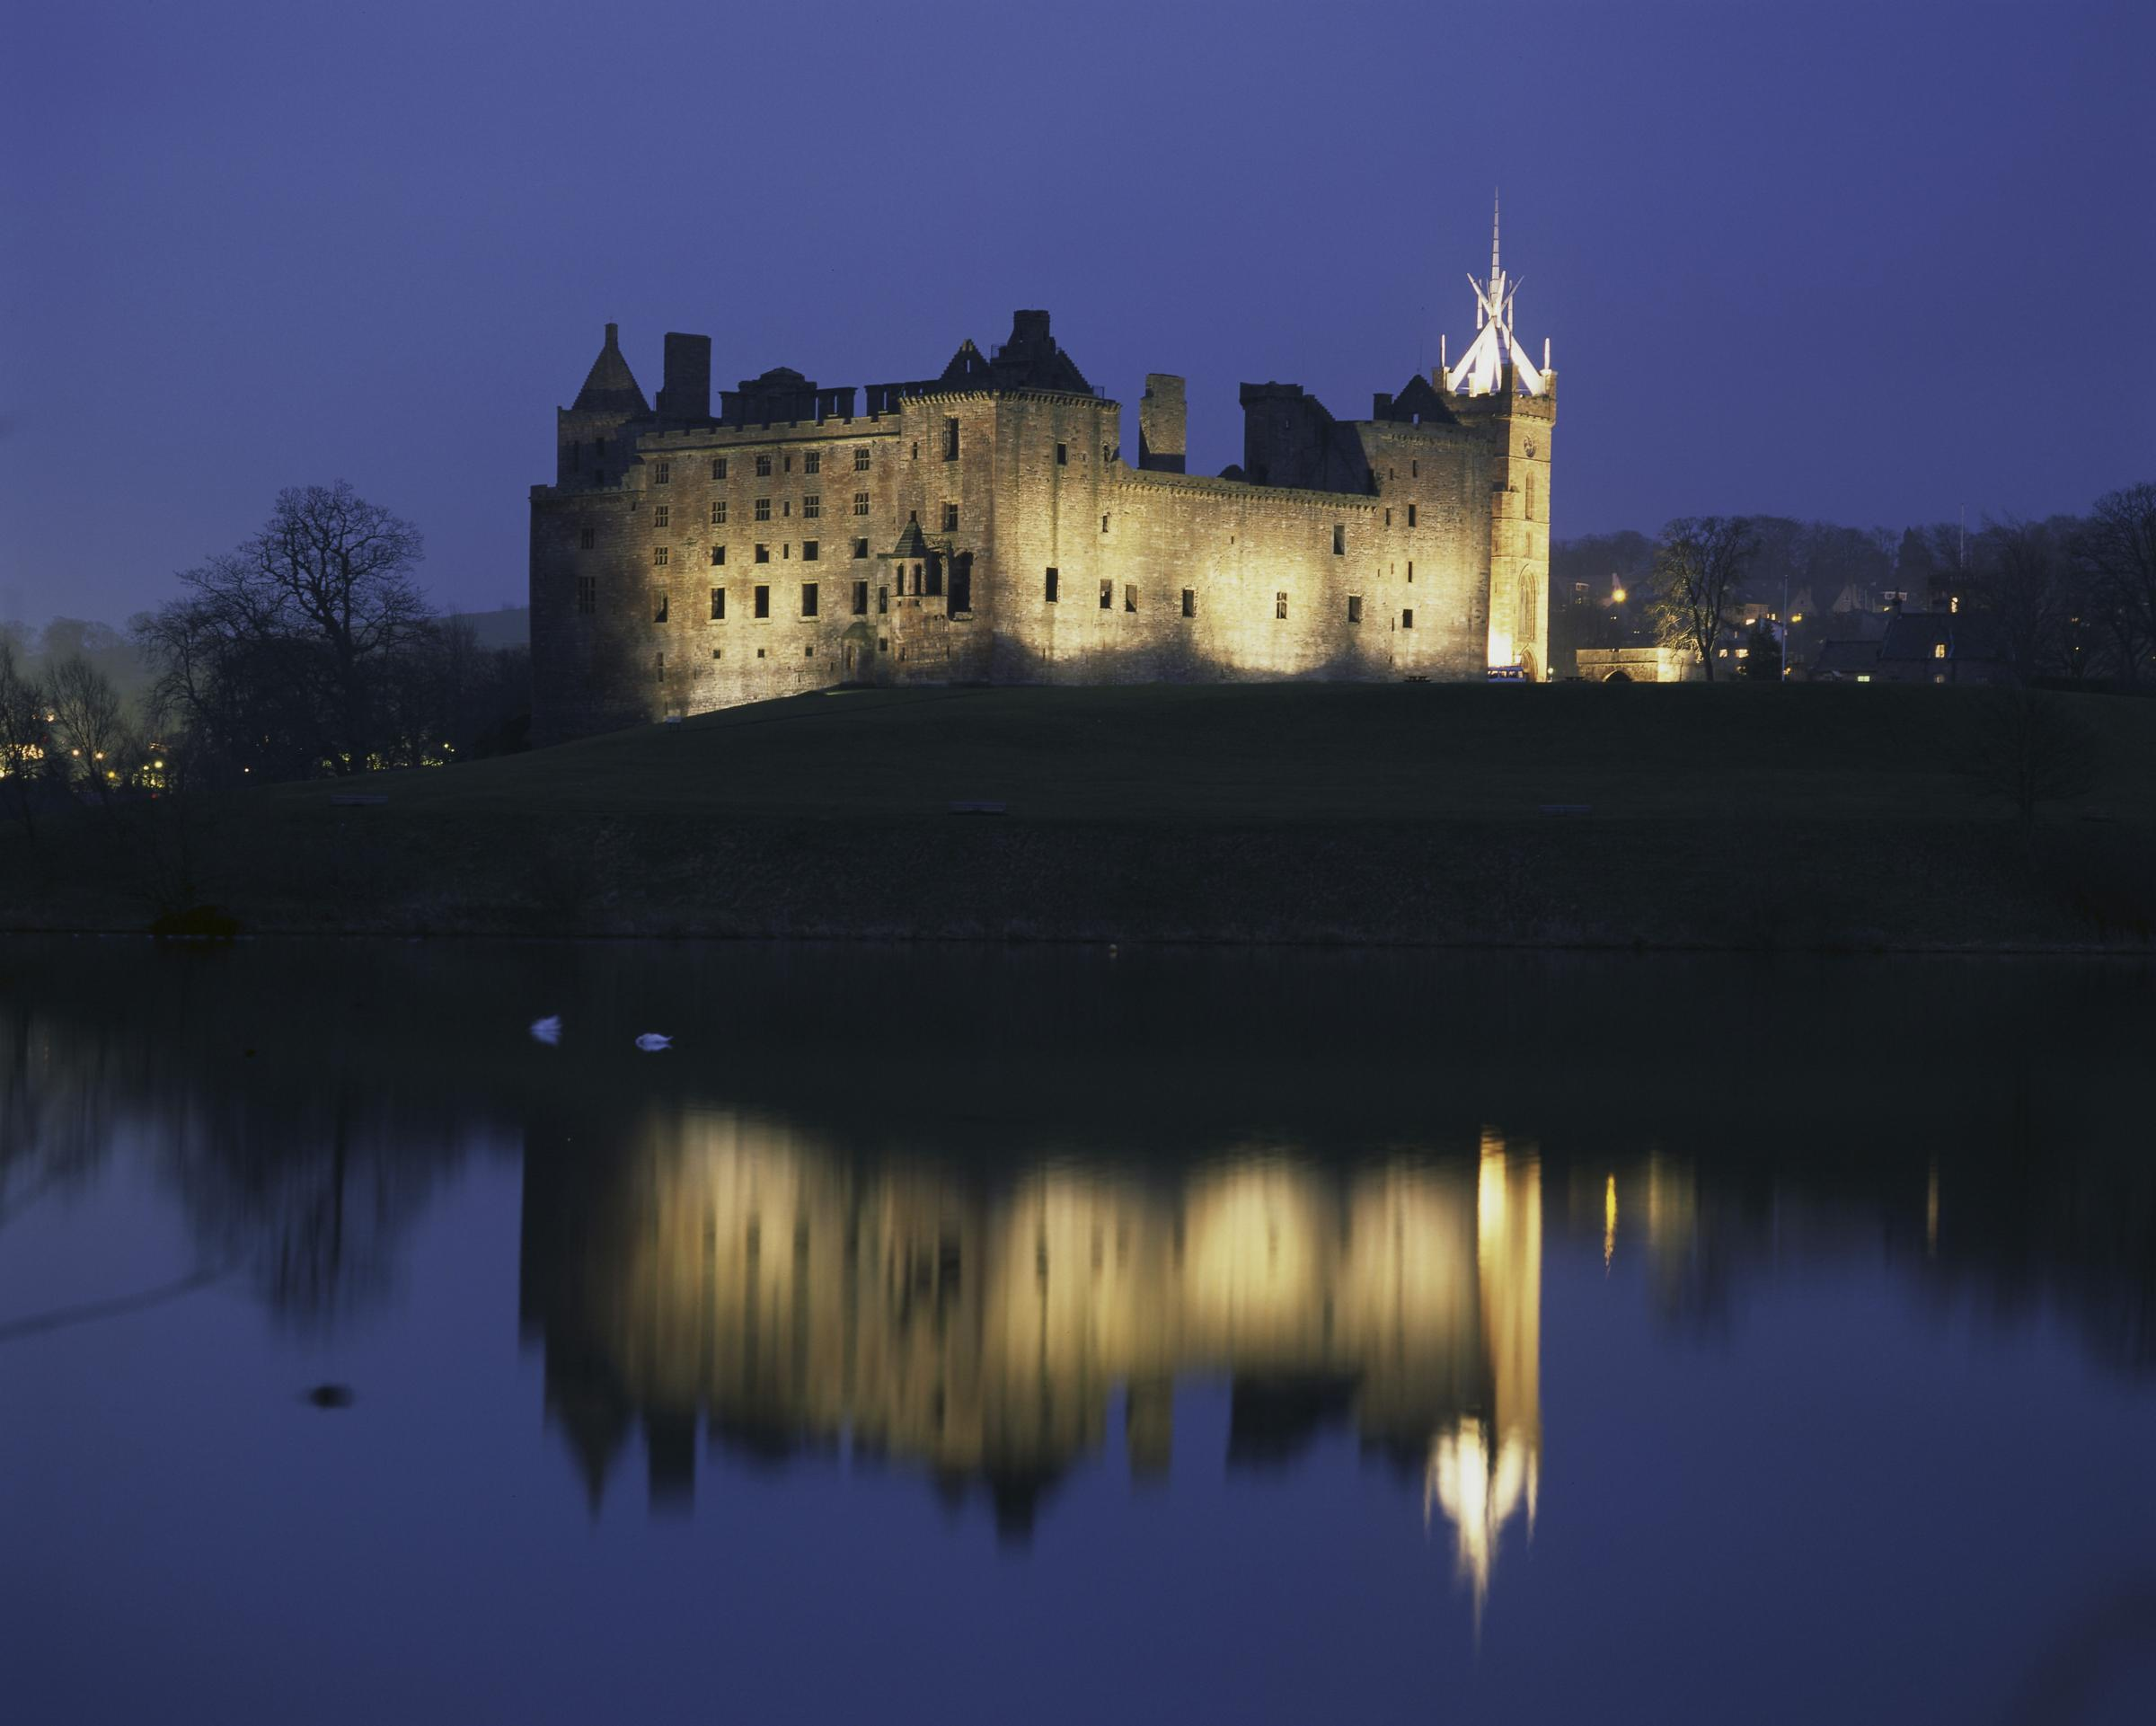 Linlithgow Palace is the birthplace of Mary Stuart